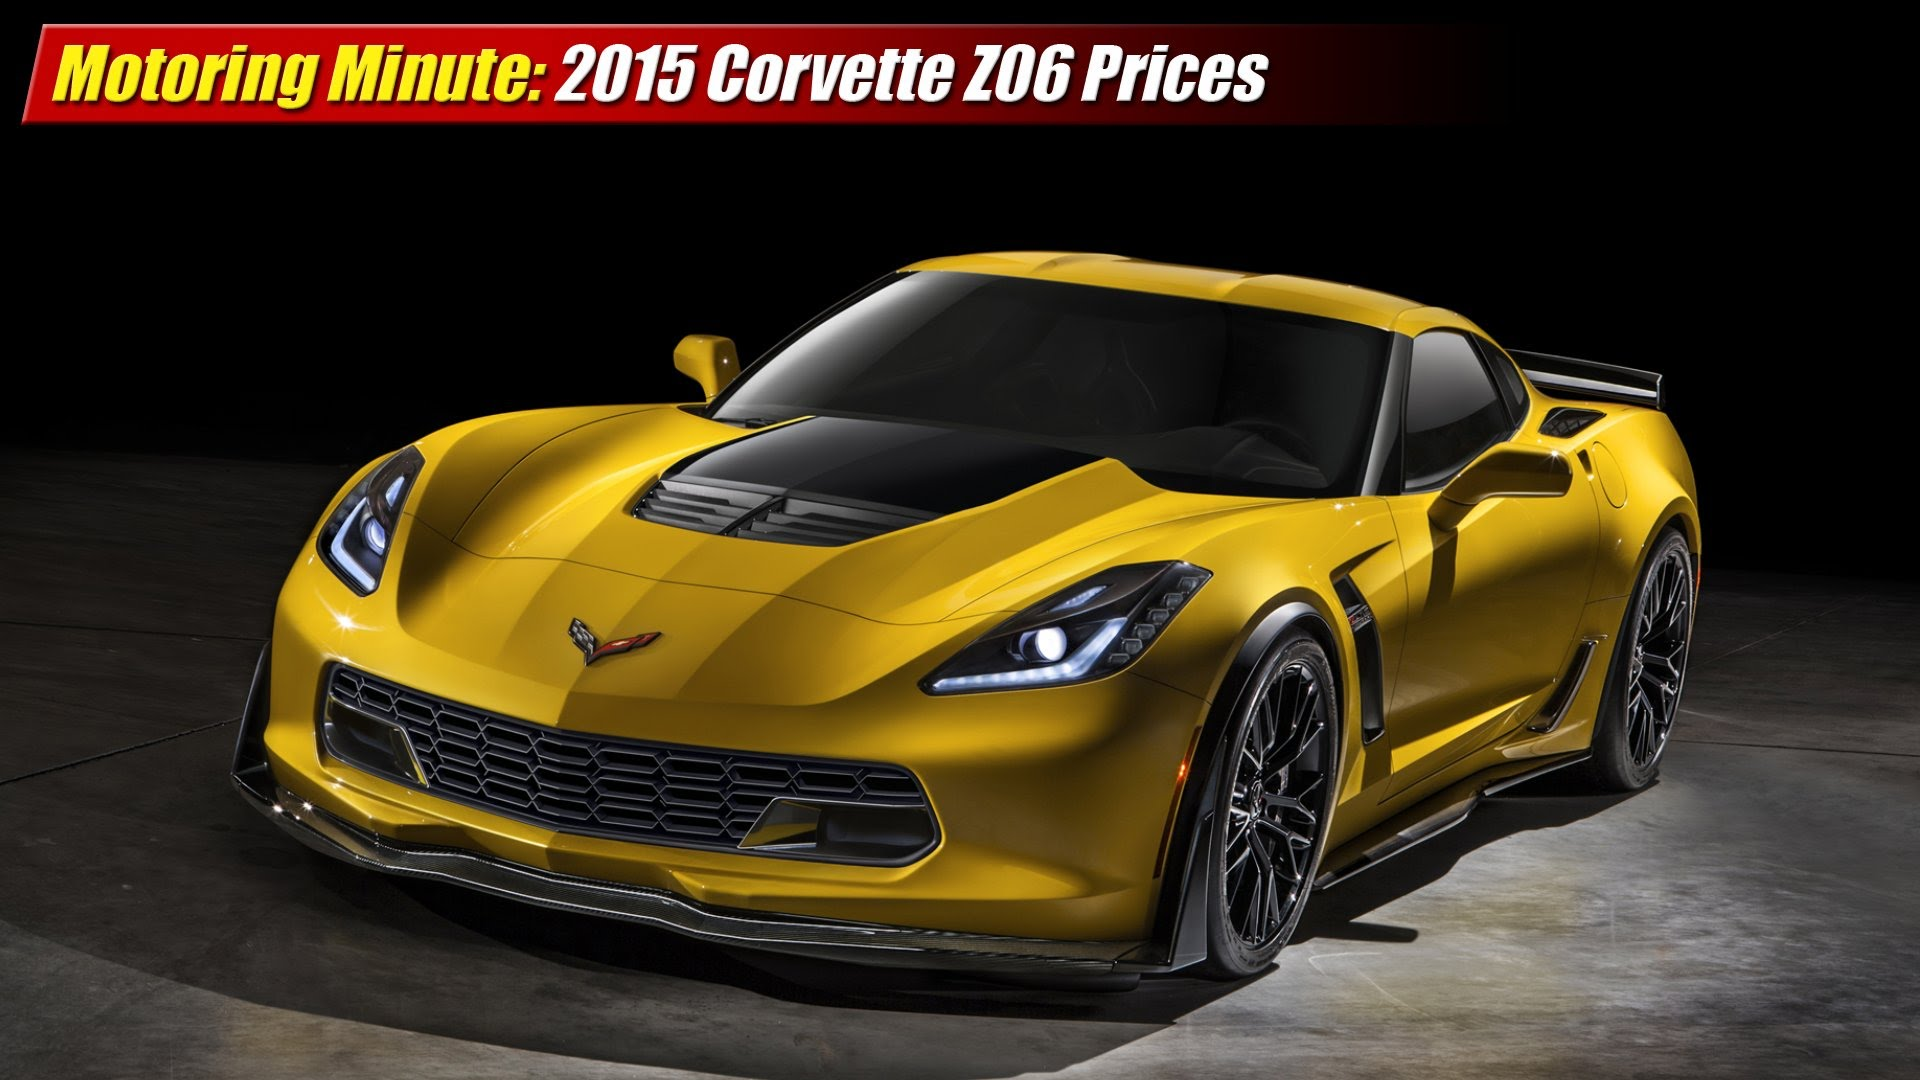 Motoring Minute 2015 Chevrolet Corvette Z06 Prices